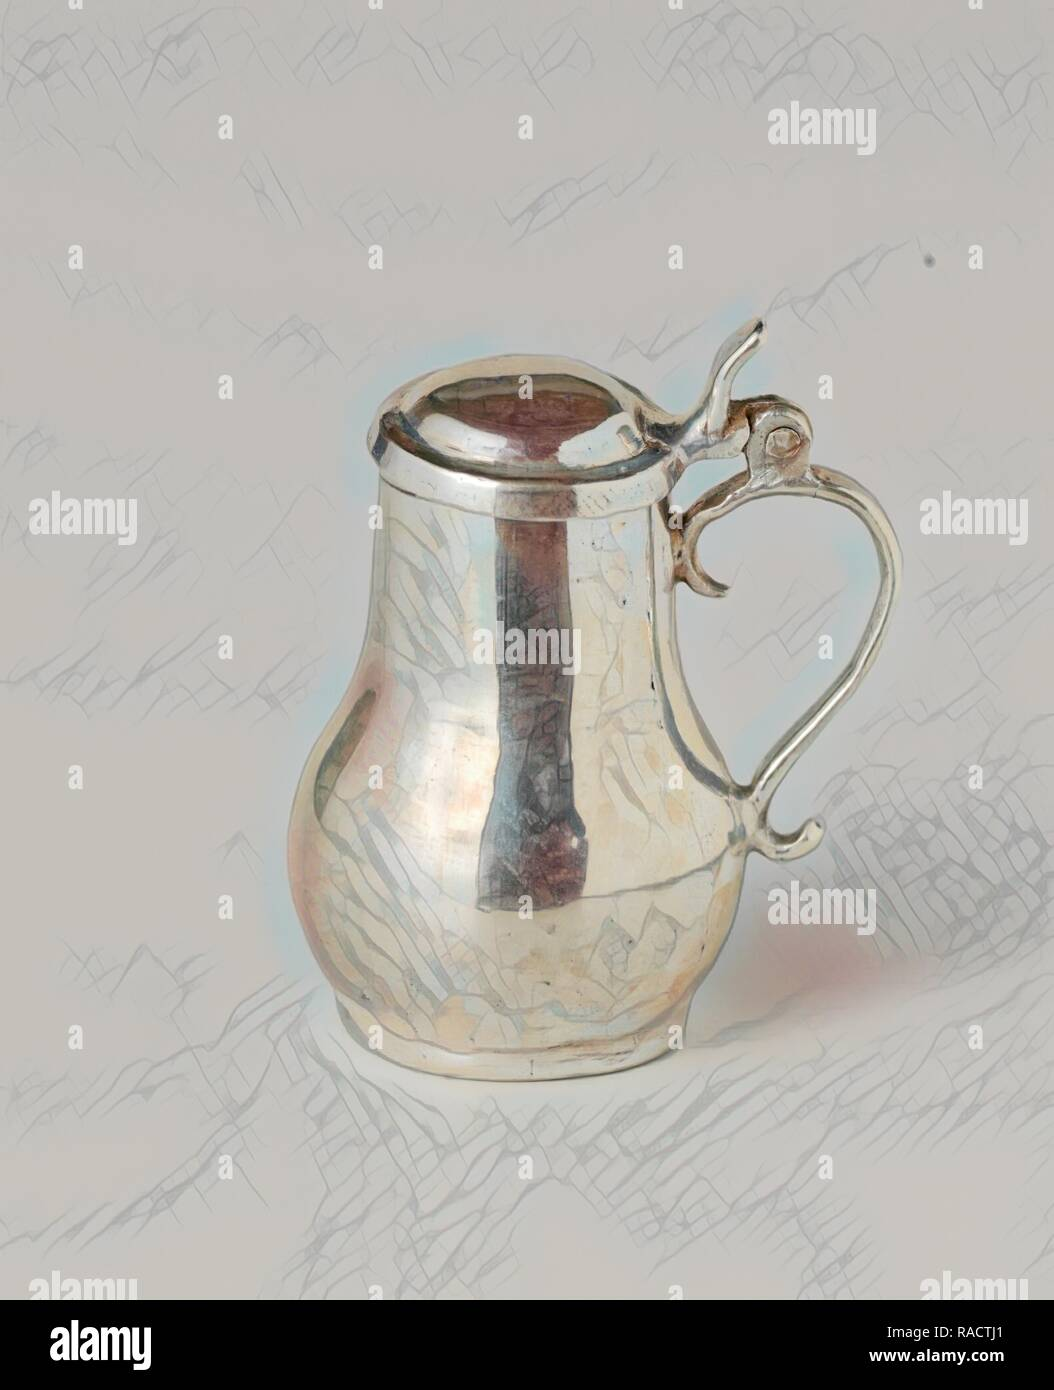 Tankard, Anonymous, c. 1704 - c. 173. Reimagined by Gibon. Classic art with a modern twist reimagined - Stock Image